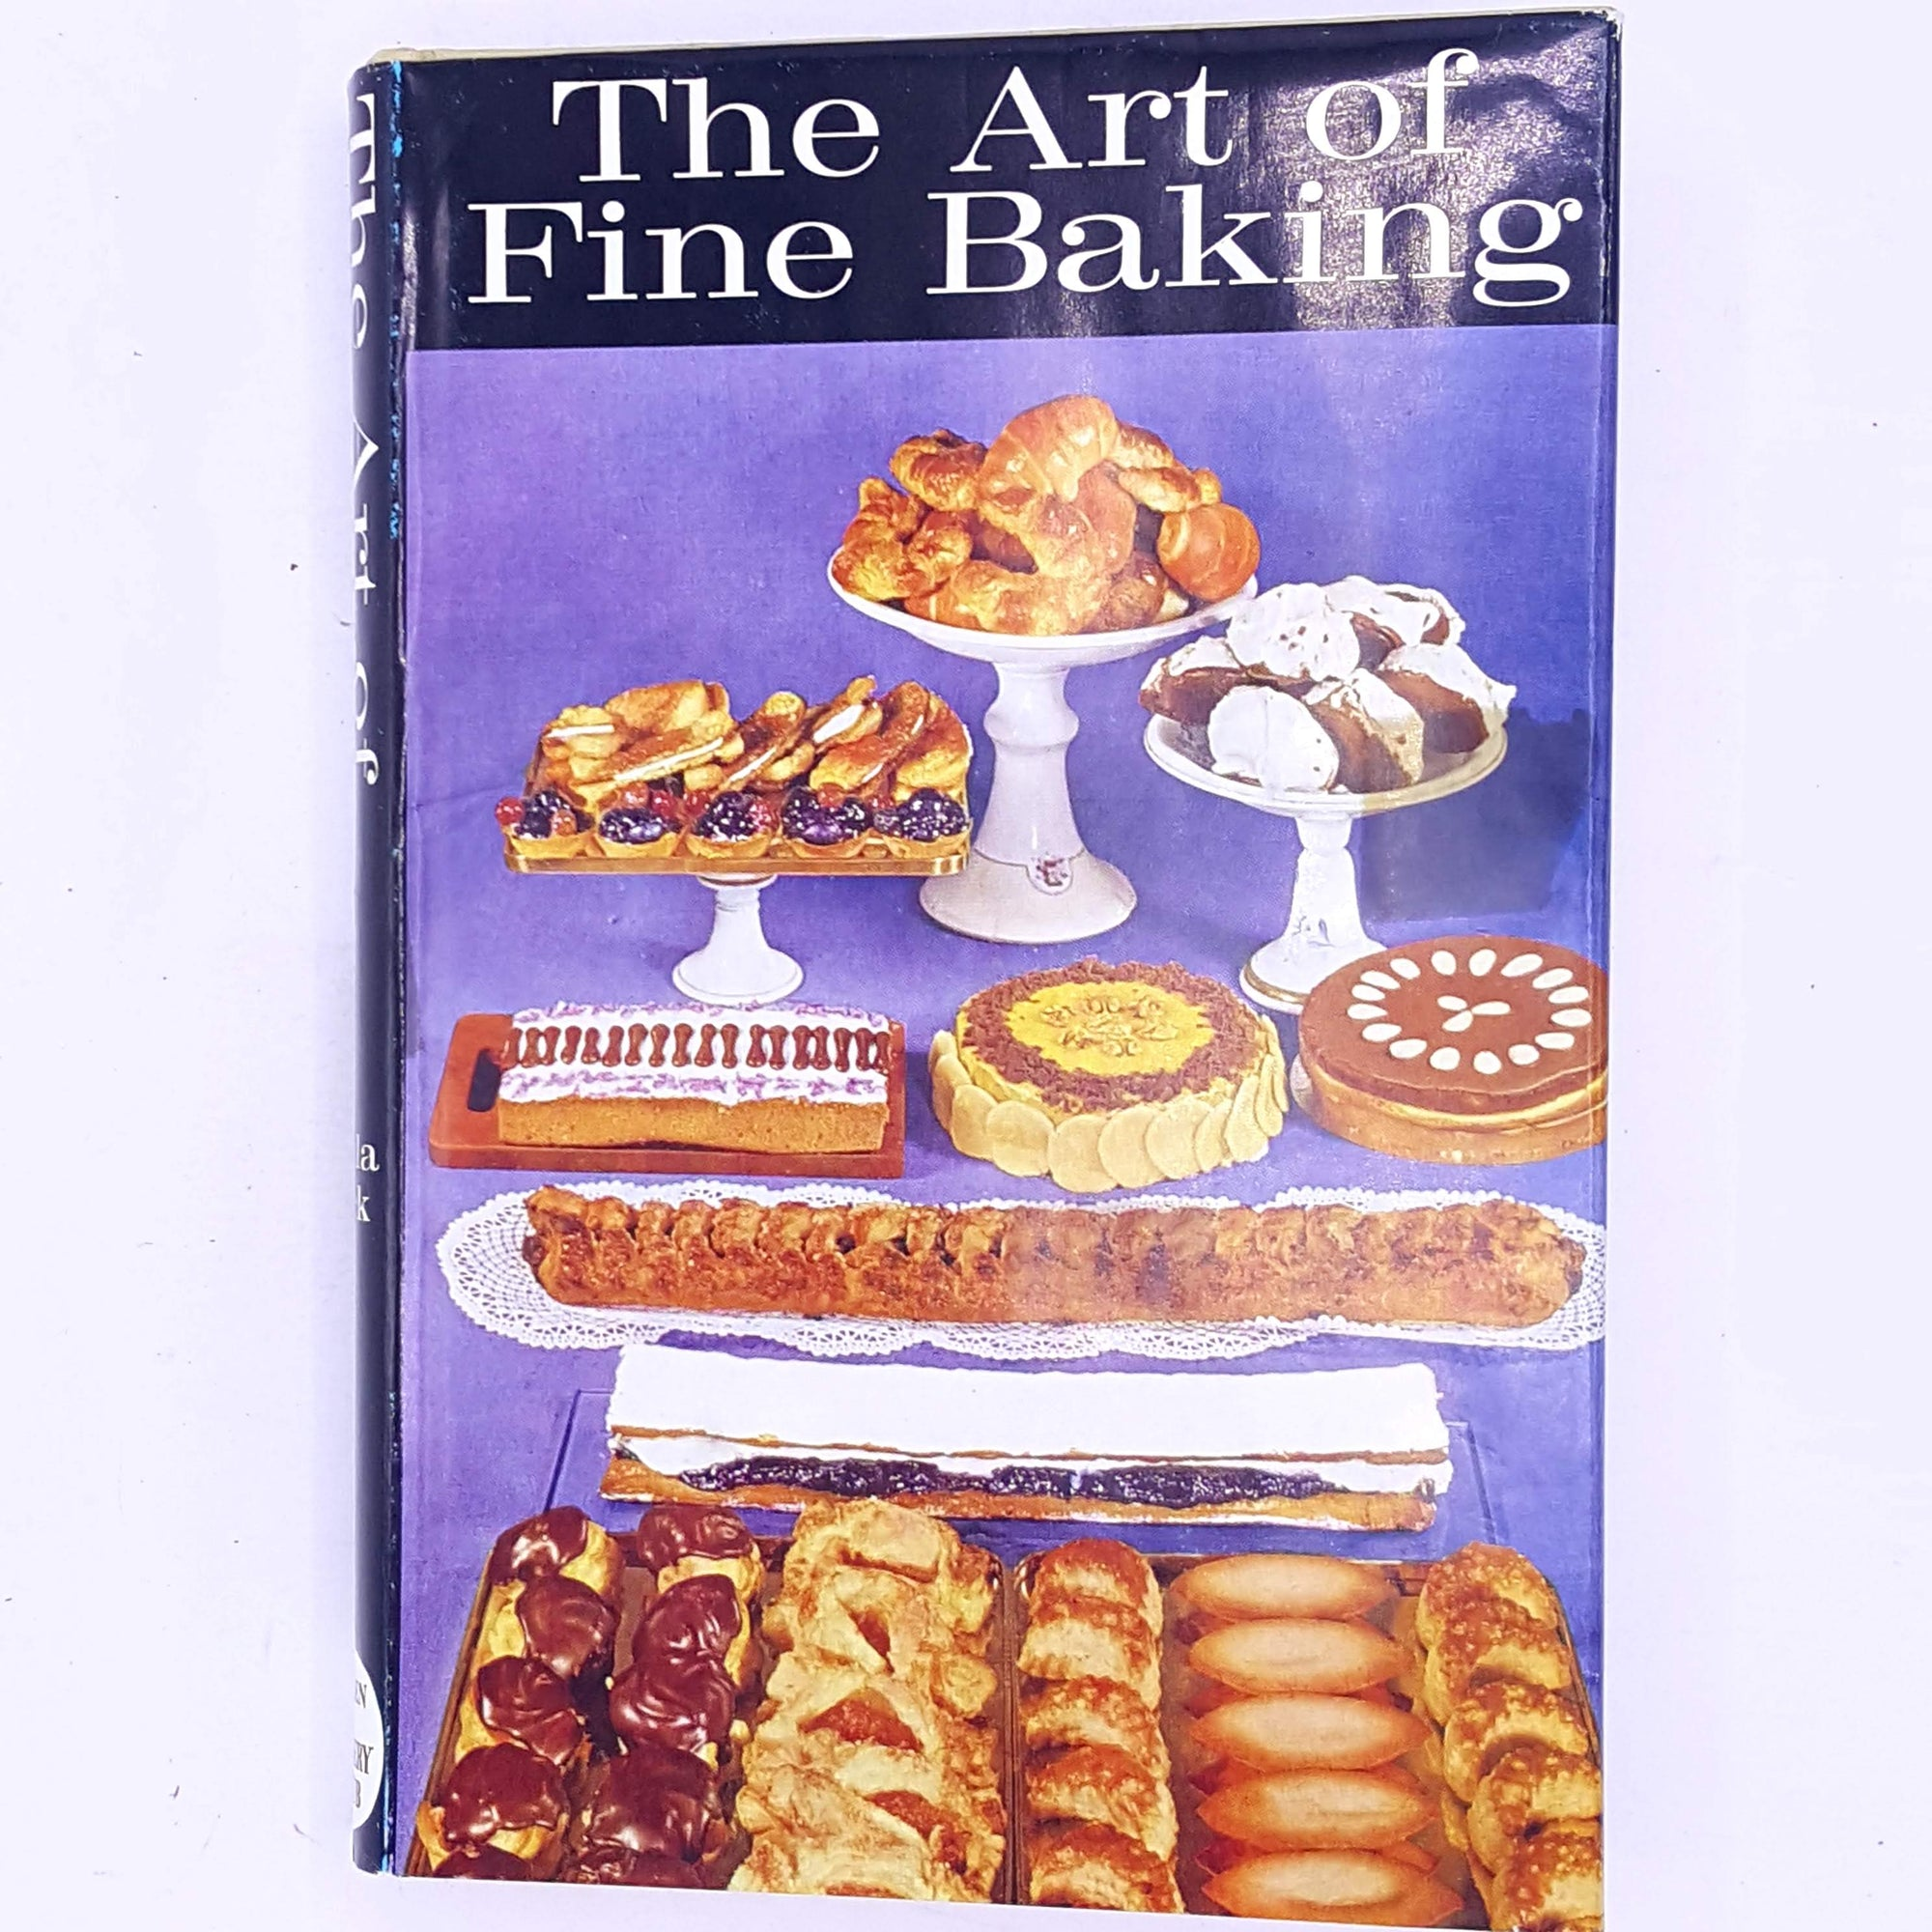 country-house-library-decorative-antique-cooking-food-gifts-hobbies-patterned-classic-cookbook-skills-old-thrift-for-foodies-the-art-of-fine-baking-baking- recipes-books-cookbooks-vintage-